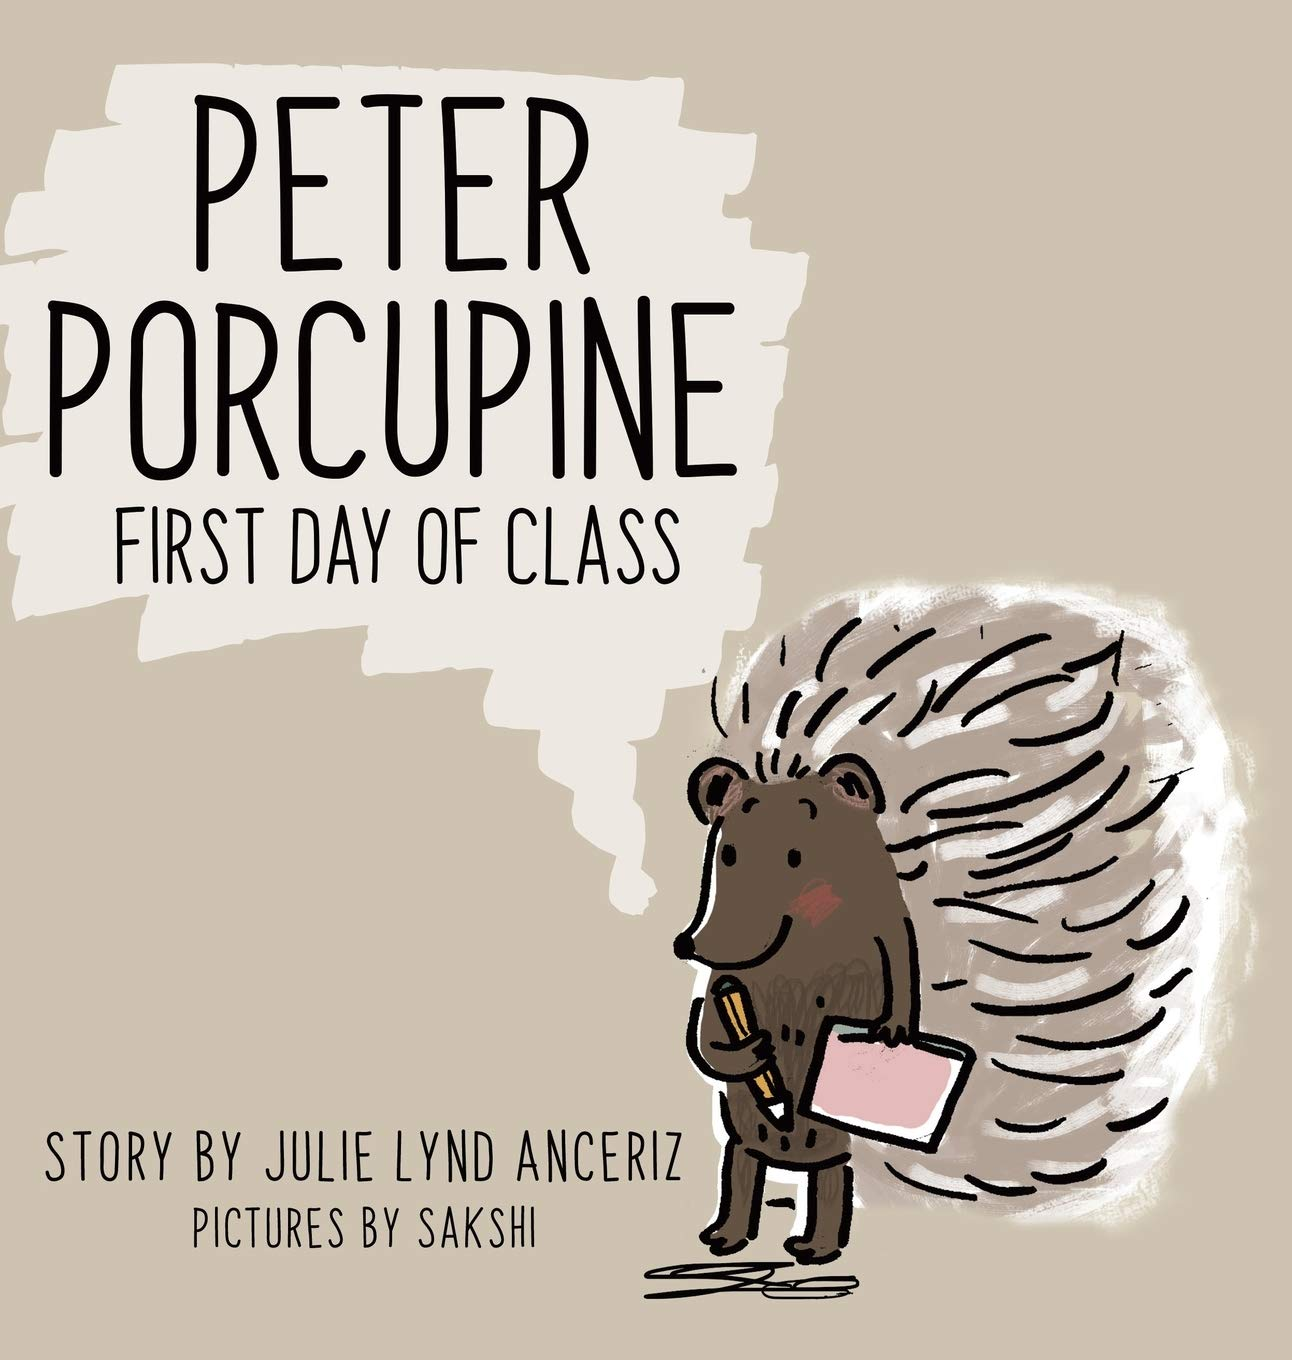 Peter Porcupine: First Day Of Class